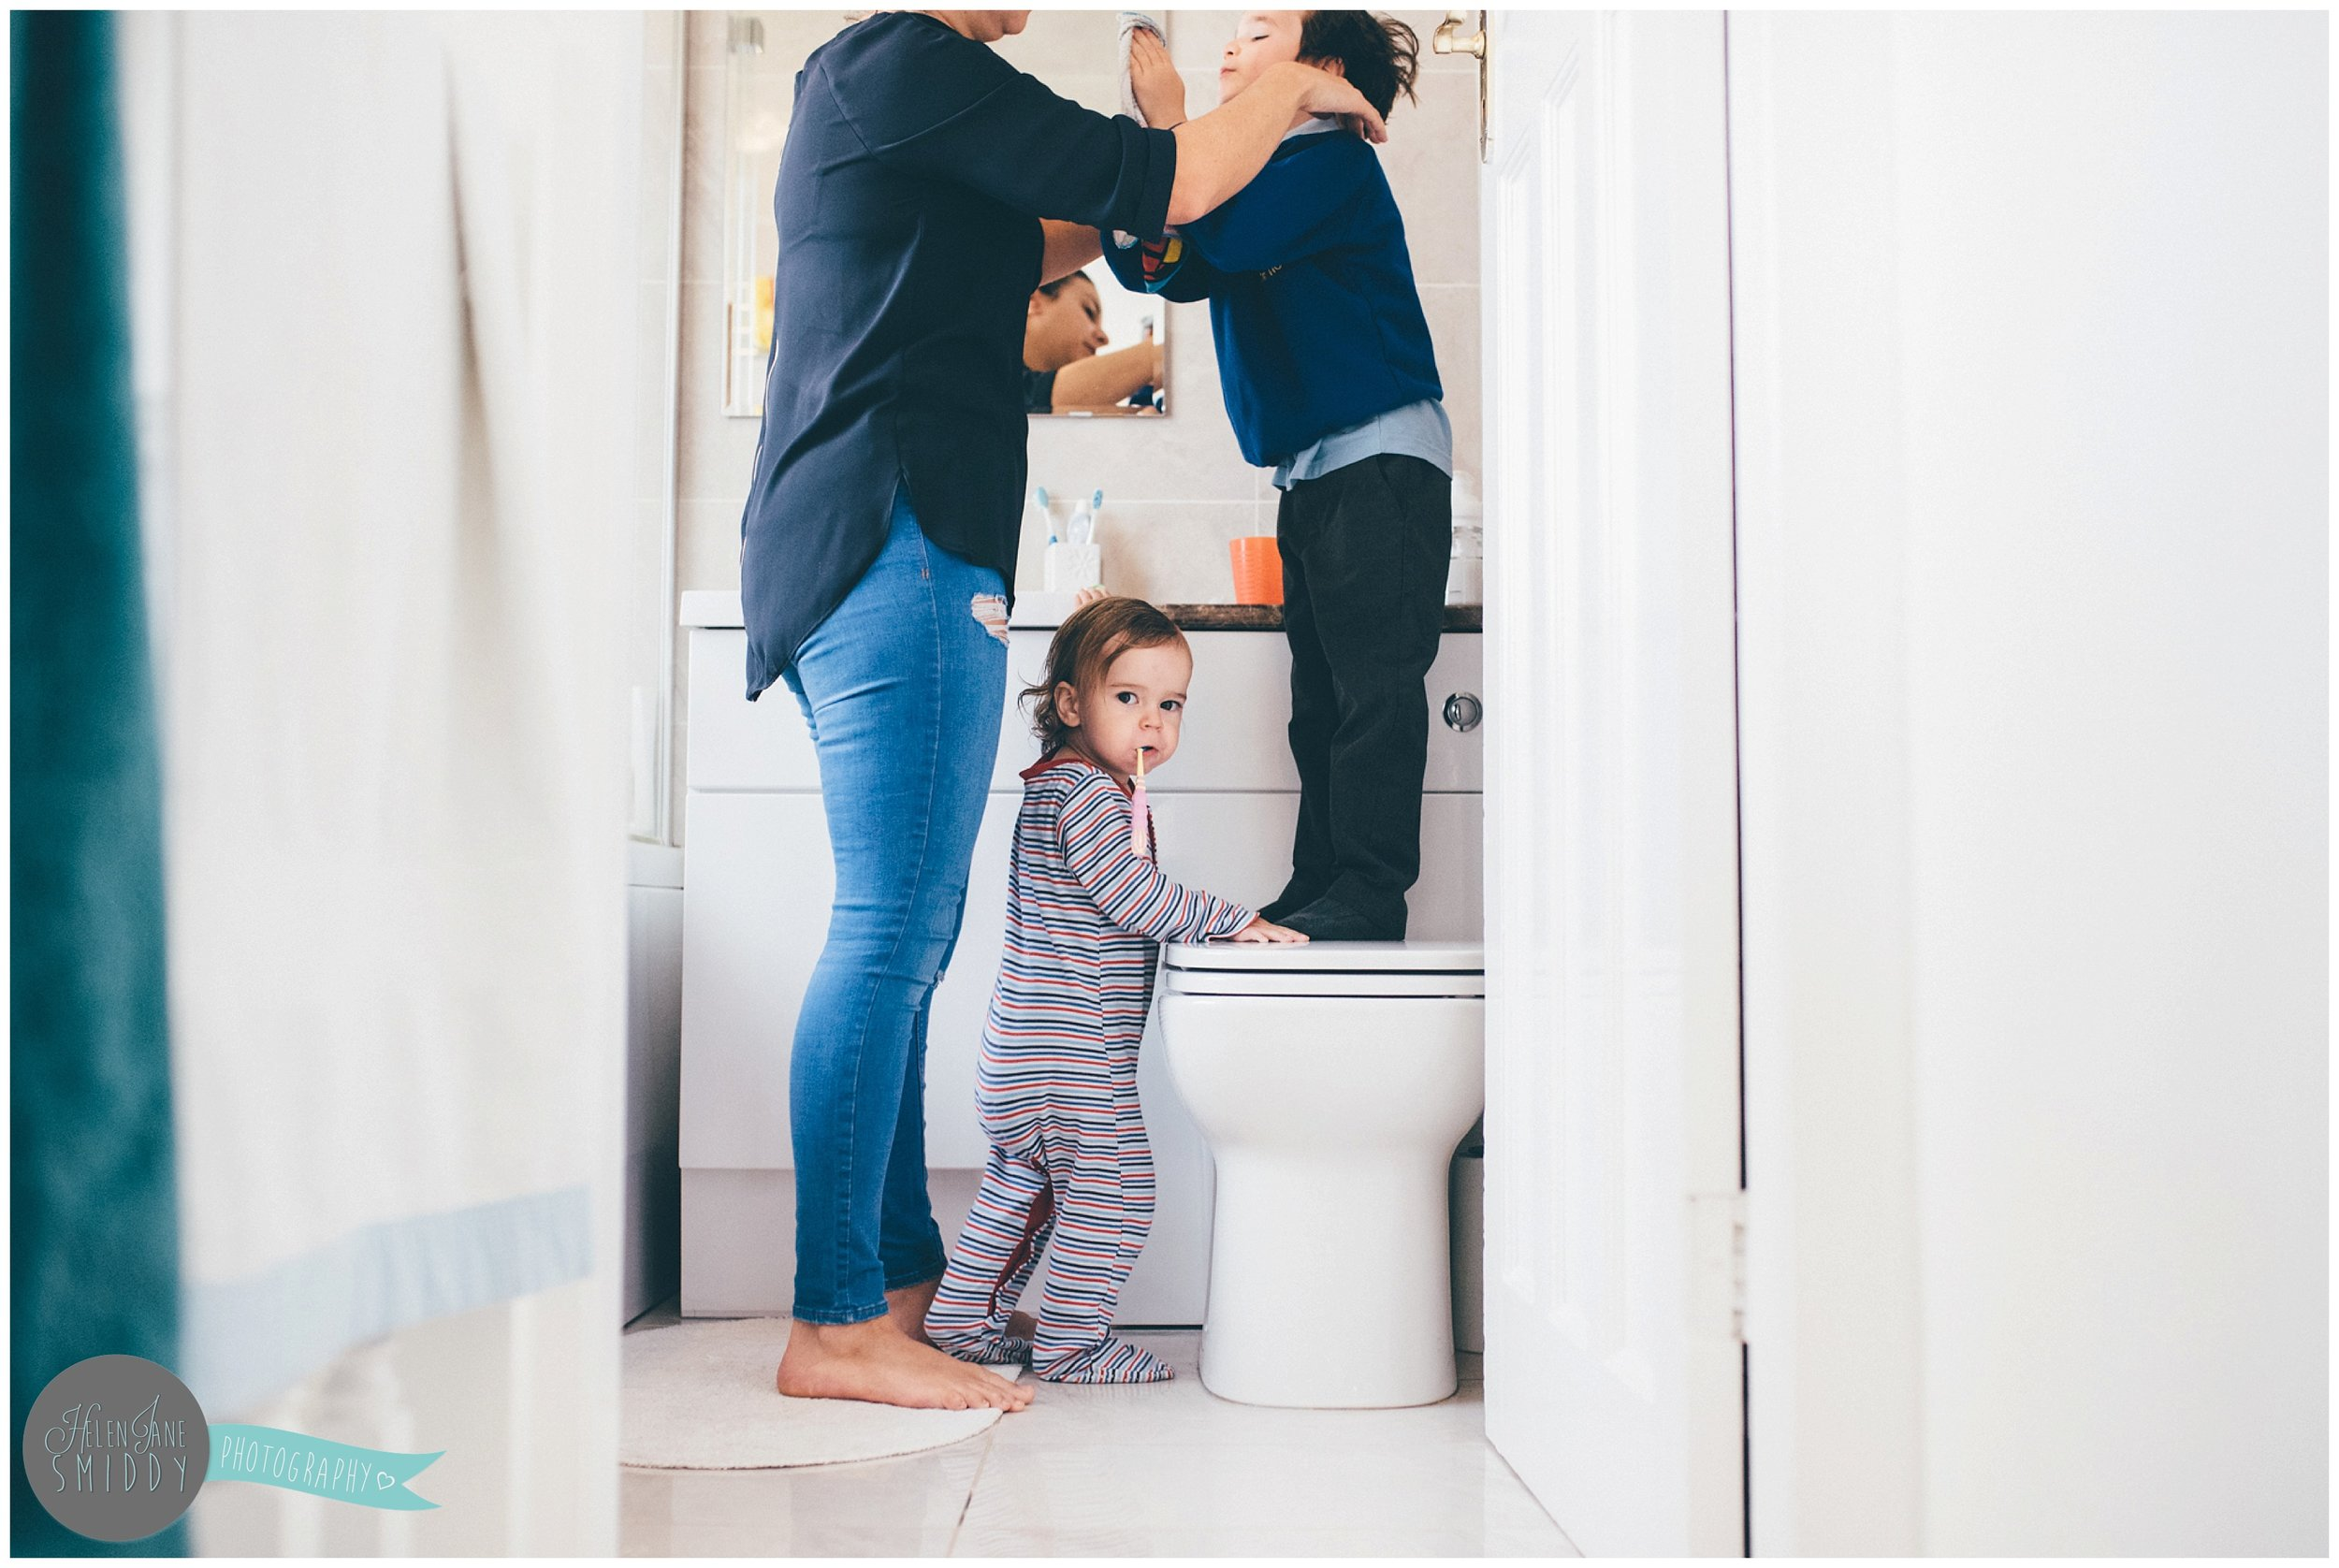 A mother brushes her sons hair whilst her daughter brushed her teeth. alongside them.